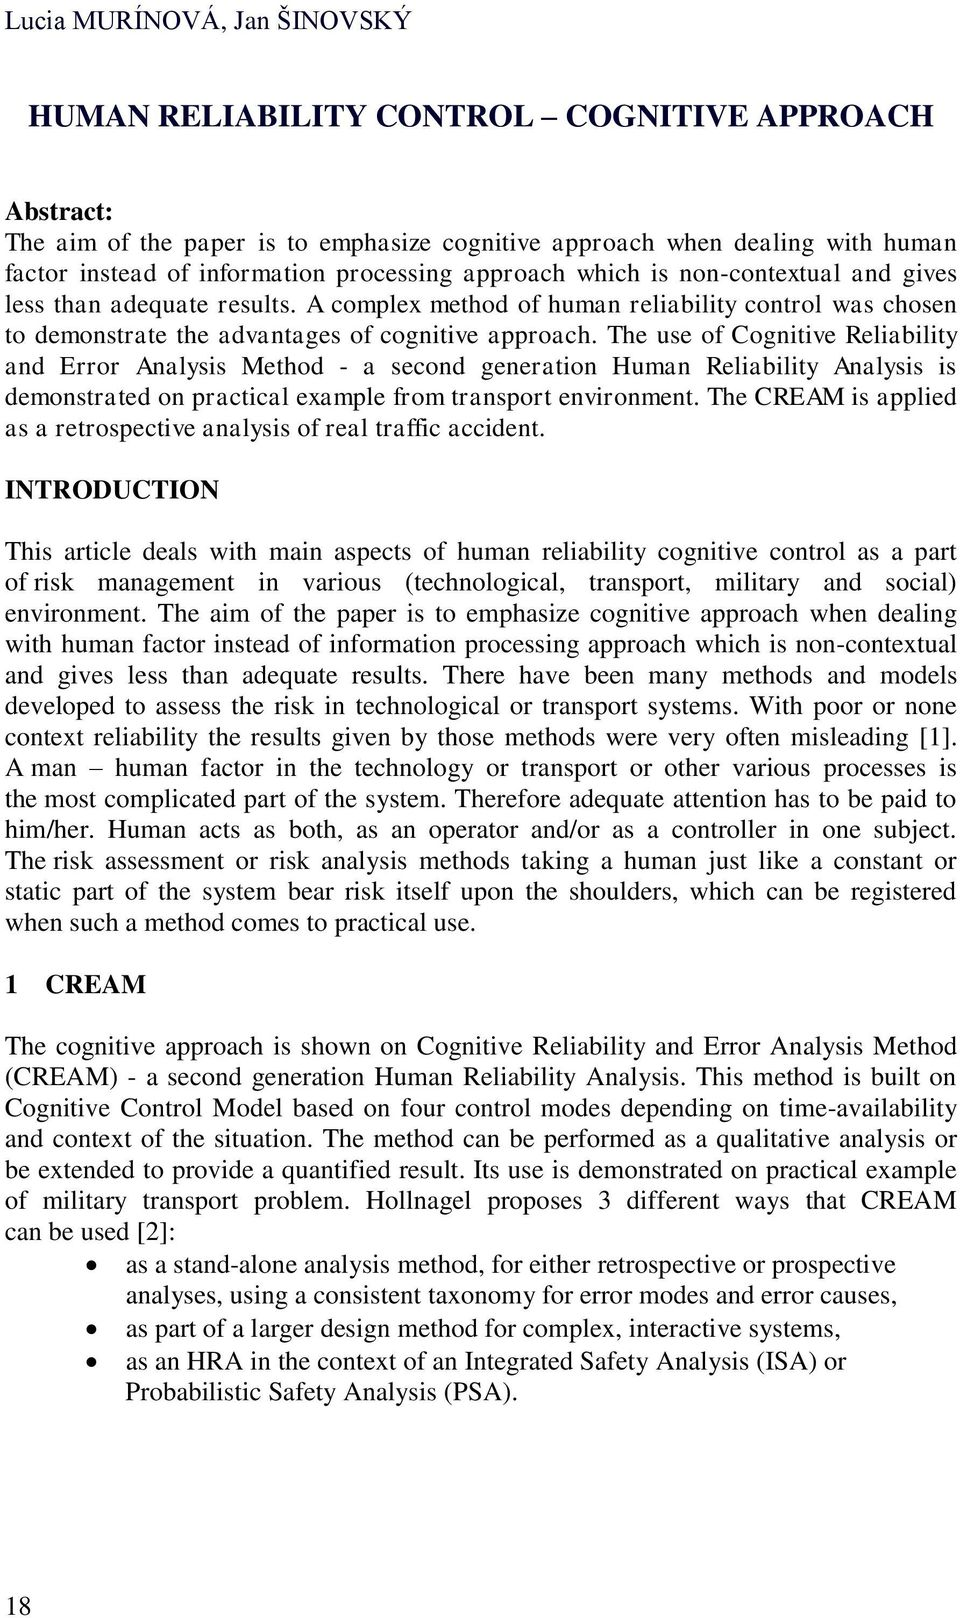 The use of Cognitive Reliability and Error Analysis Method - a second generation Human Reliability Analysis is demonstrated on practical example from transport environment.